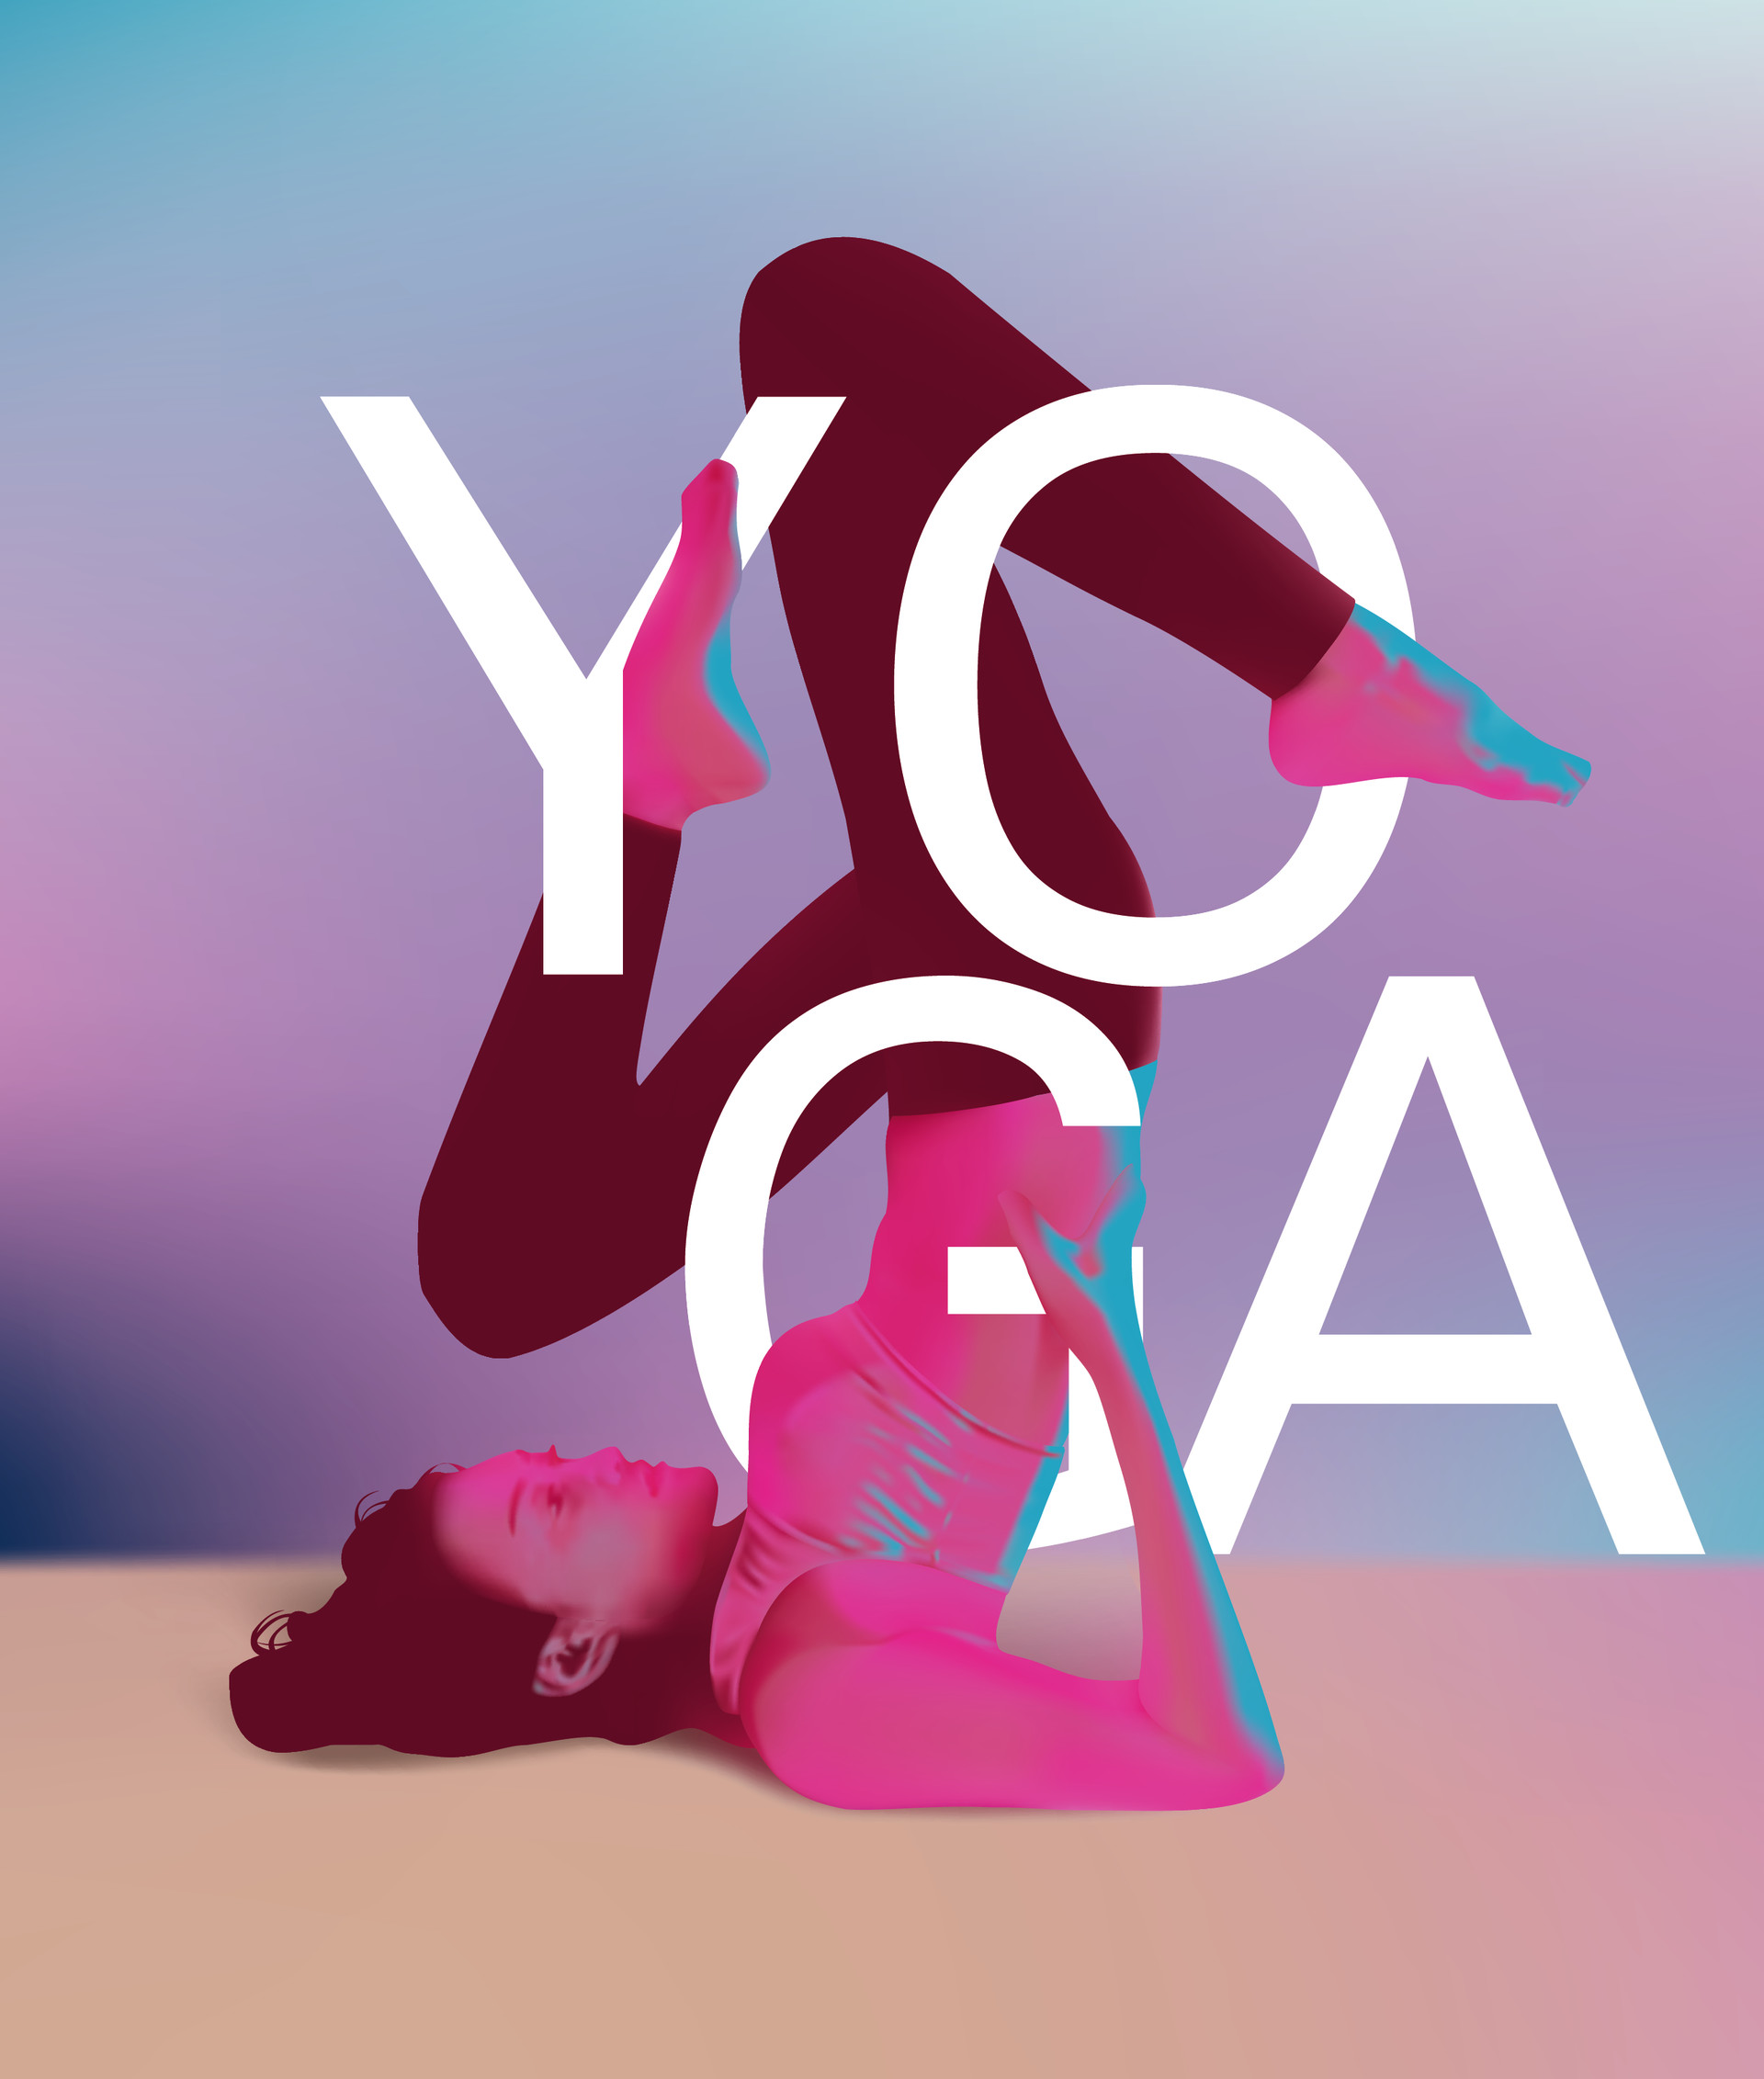 Illus man - Portrait of pretty young woman yoga style